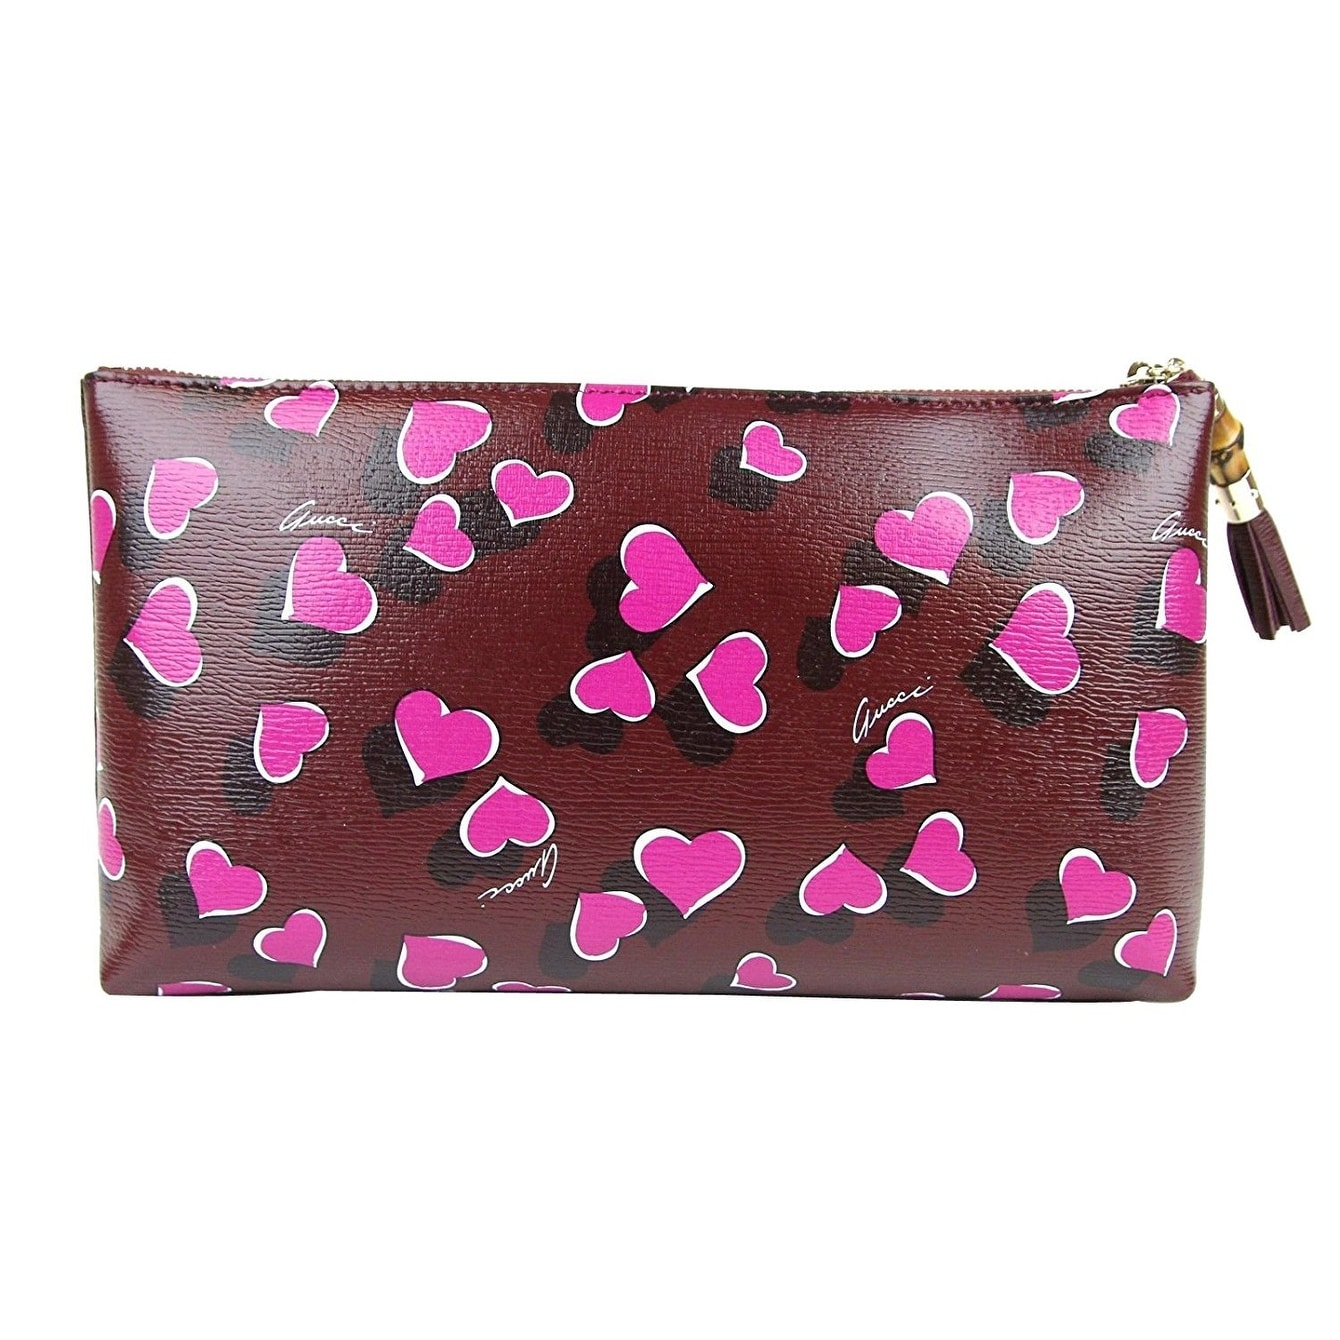 49d670959 Shop Gucci Bamboo Heartbeat Burgundy Leather Large Pouch Clutch Bag 338815  5009 - One size - Free Shipping Today - Overstock - 27603219